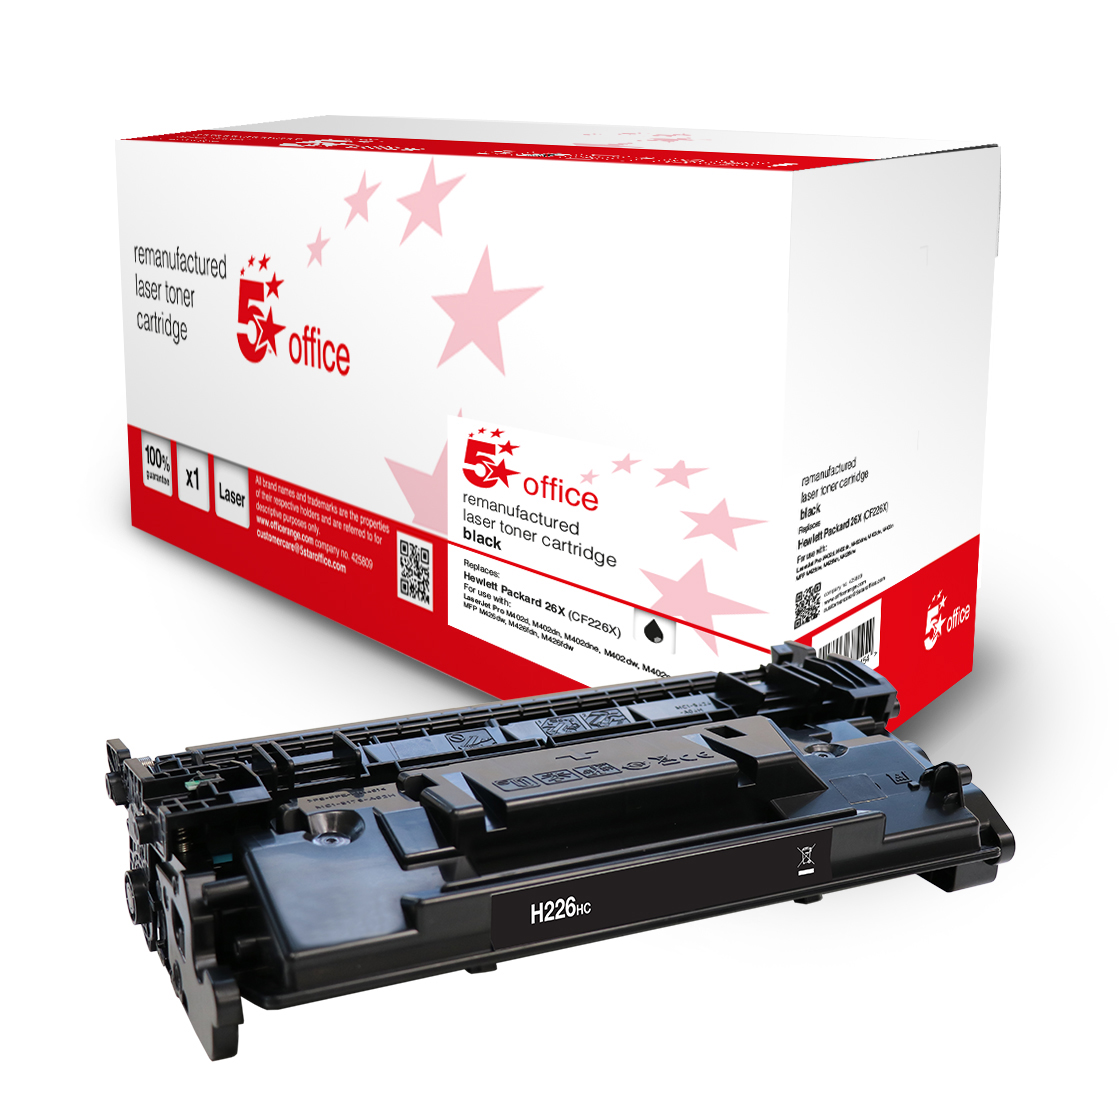 Laser Toner Cartridges 5 Star Office Remanufactured Toner Cartridge Page Life Black 9000pp HP 26X CF226X Alternative